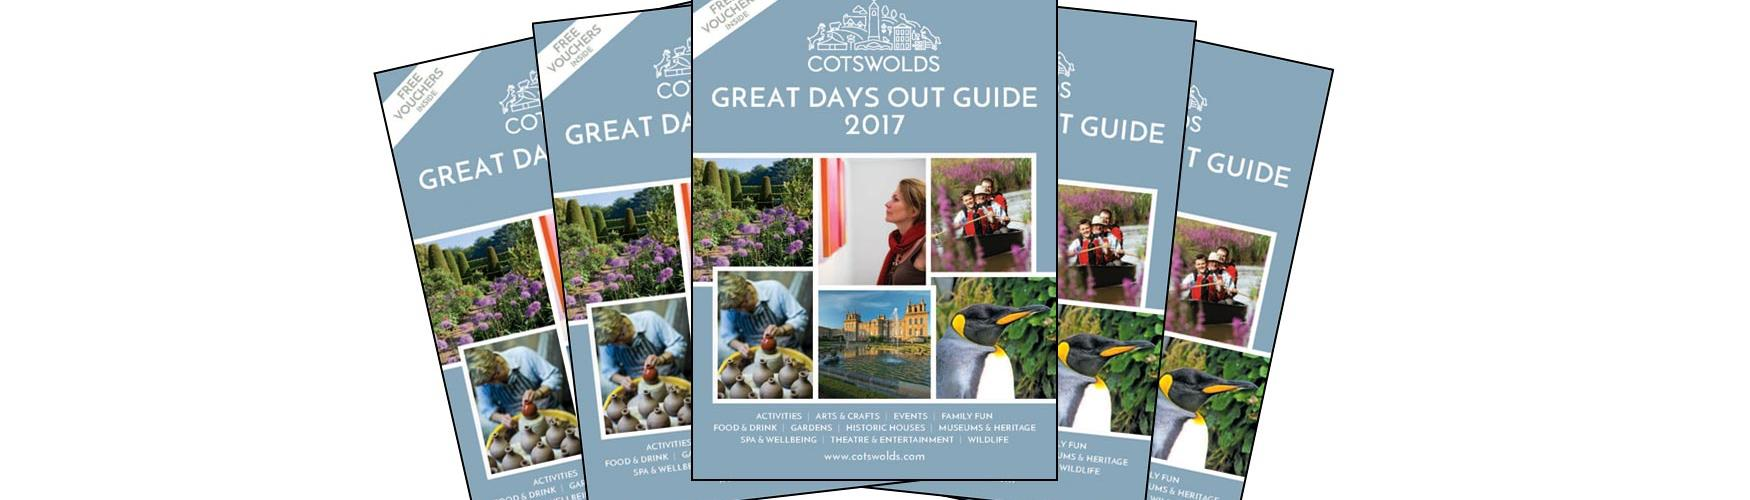 The Great Days Out Guide